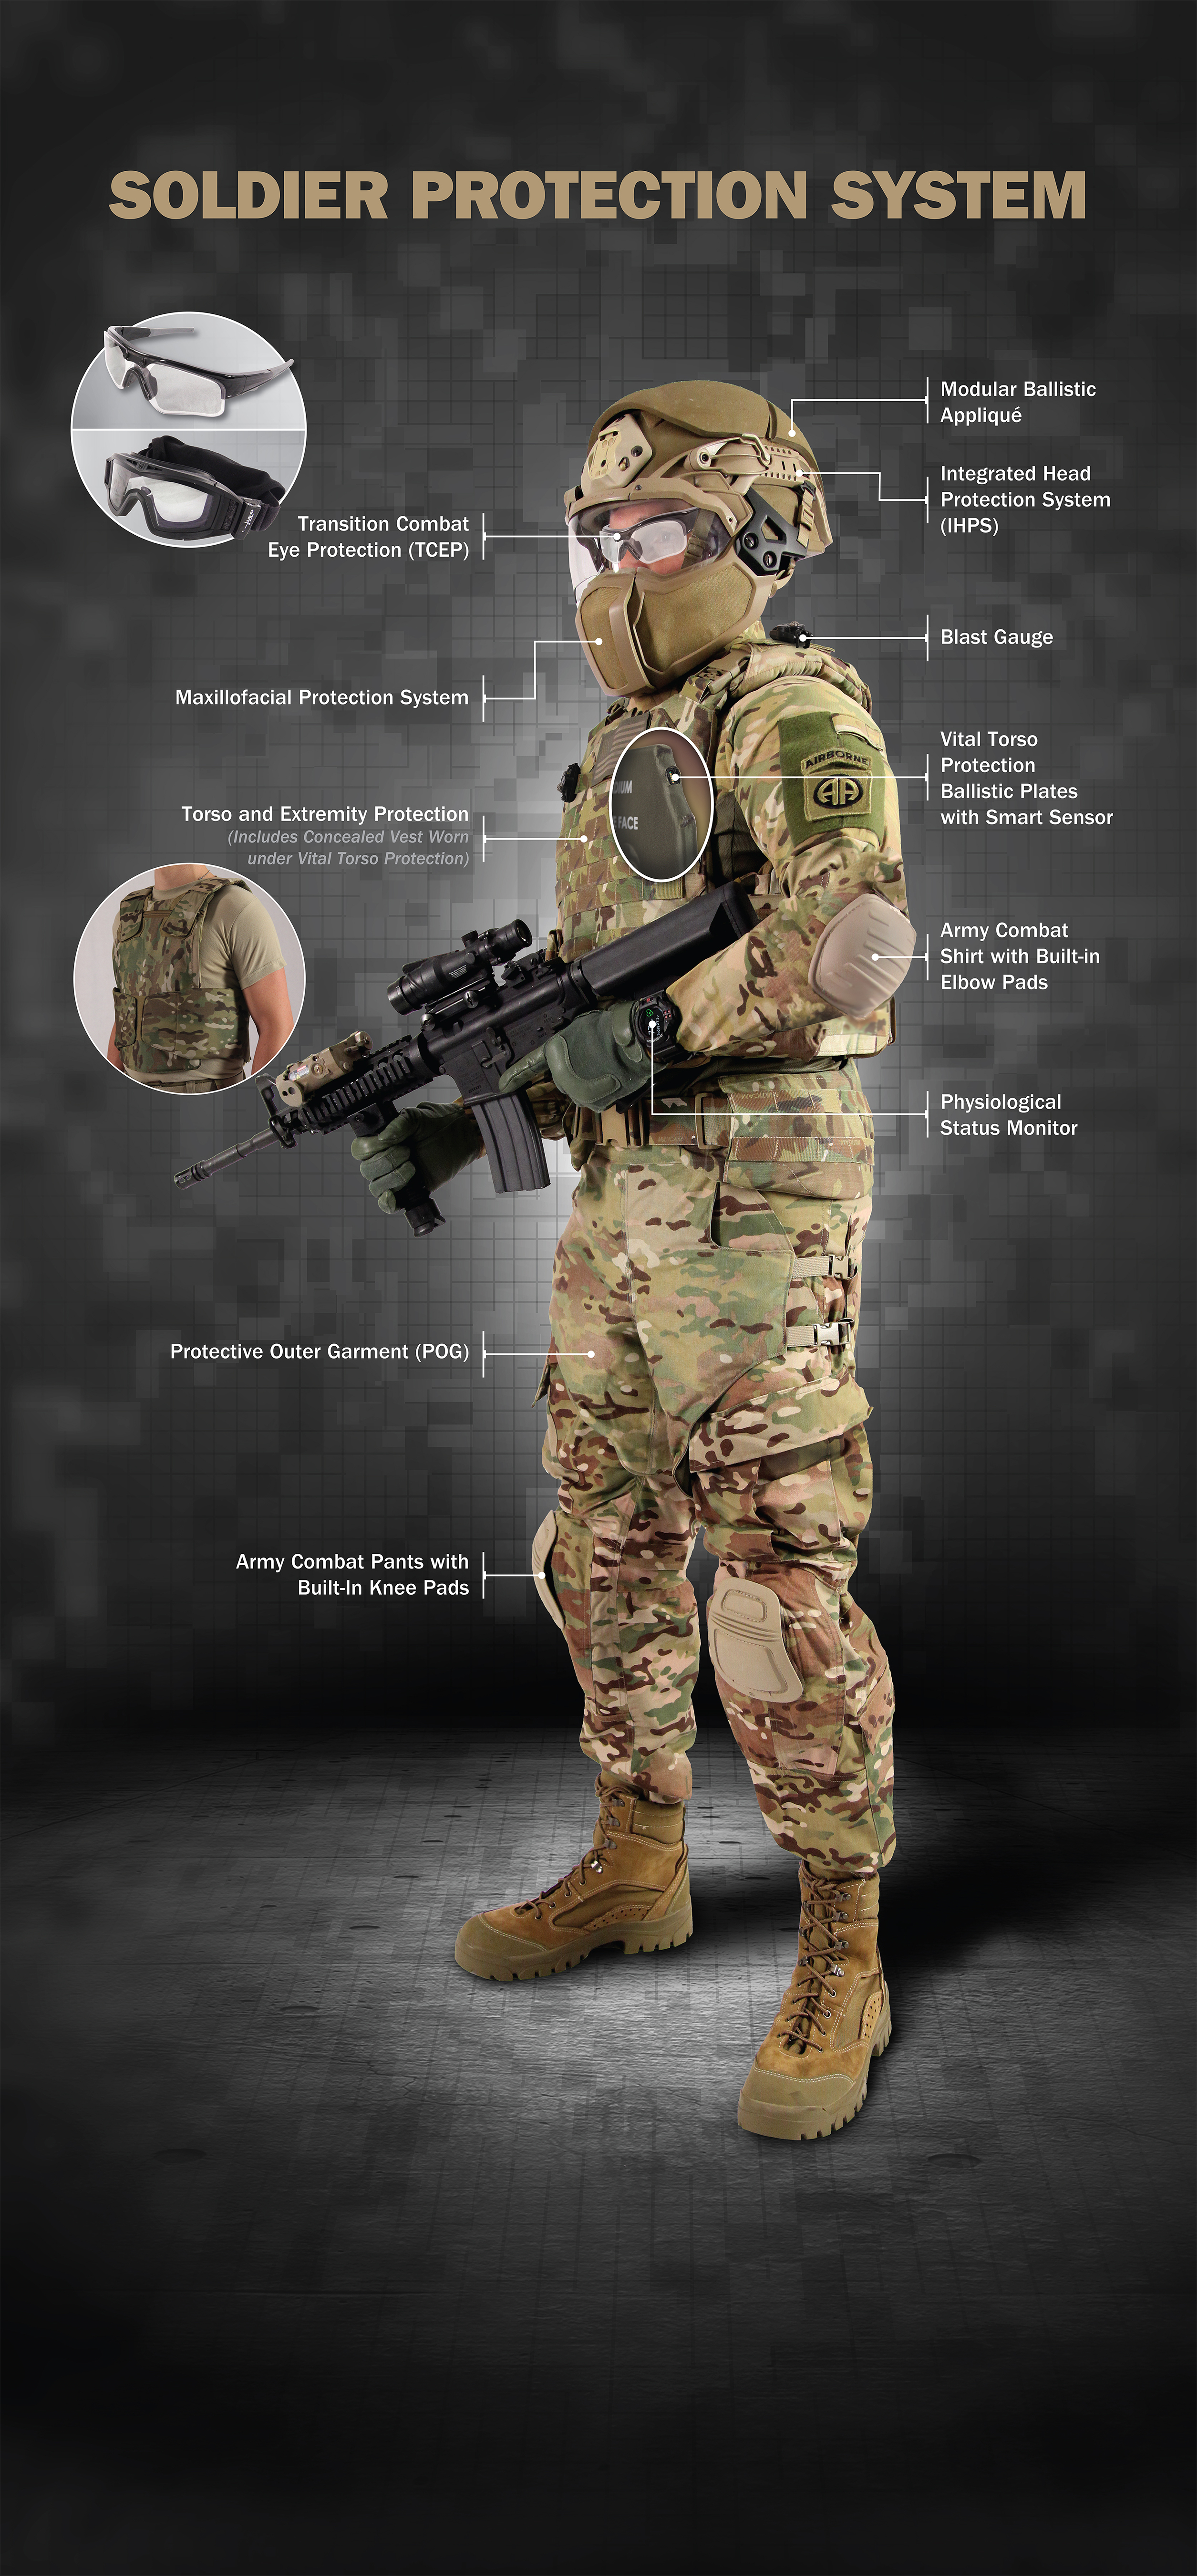 Army To Roll Out Better Body Armor Combat Shirt In 2019